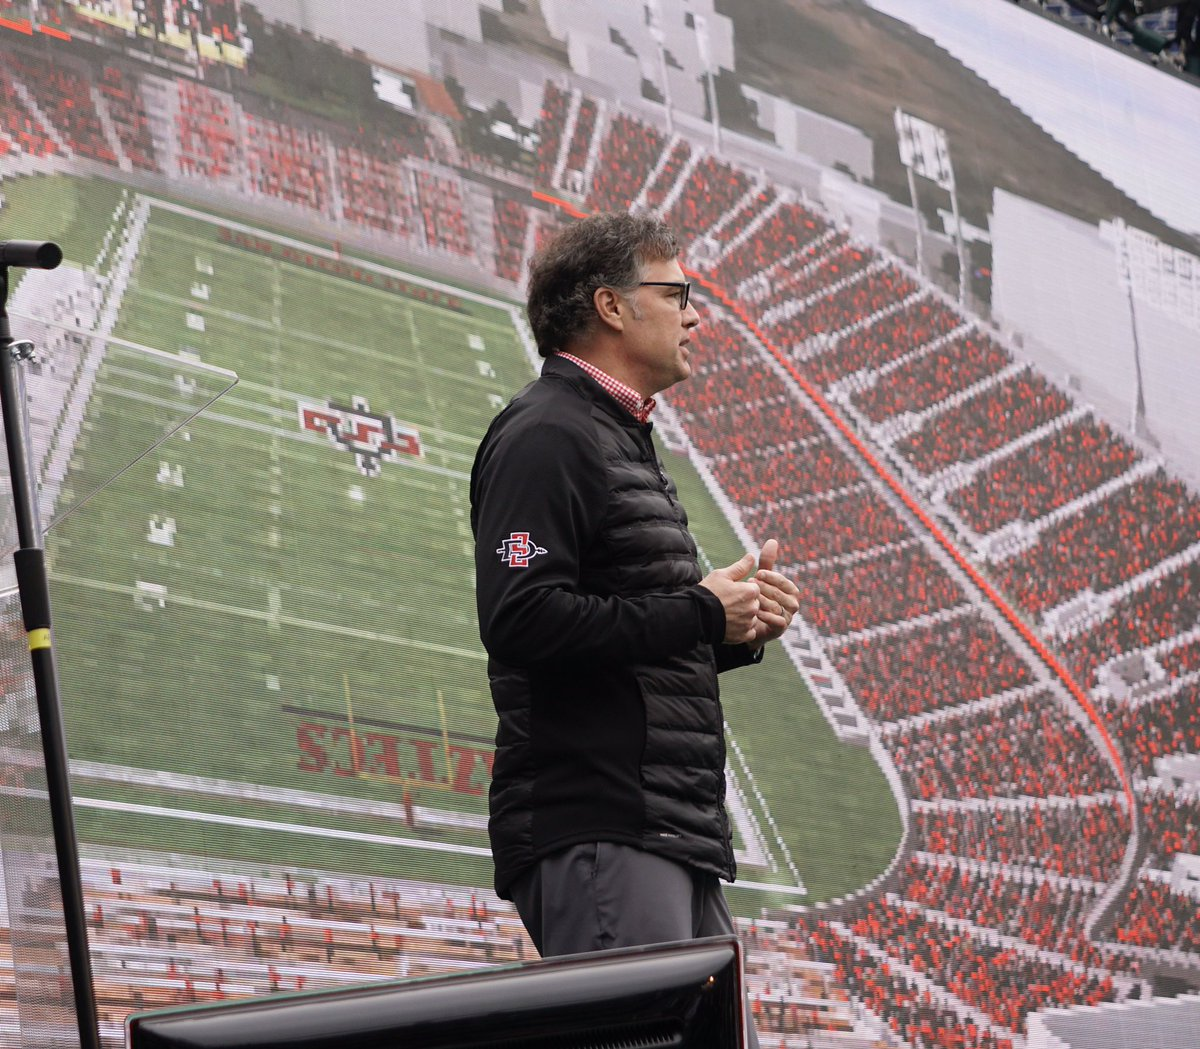 1098 t sdsu -  Been To Build The Best Venue For San Diego State University And The Community As A Whole Sdsu Athletic Director Jdwickerpic Twitter Com 43ap3ctsw1